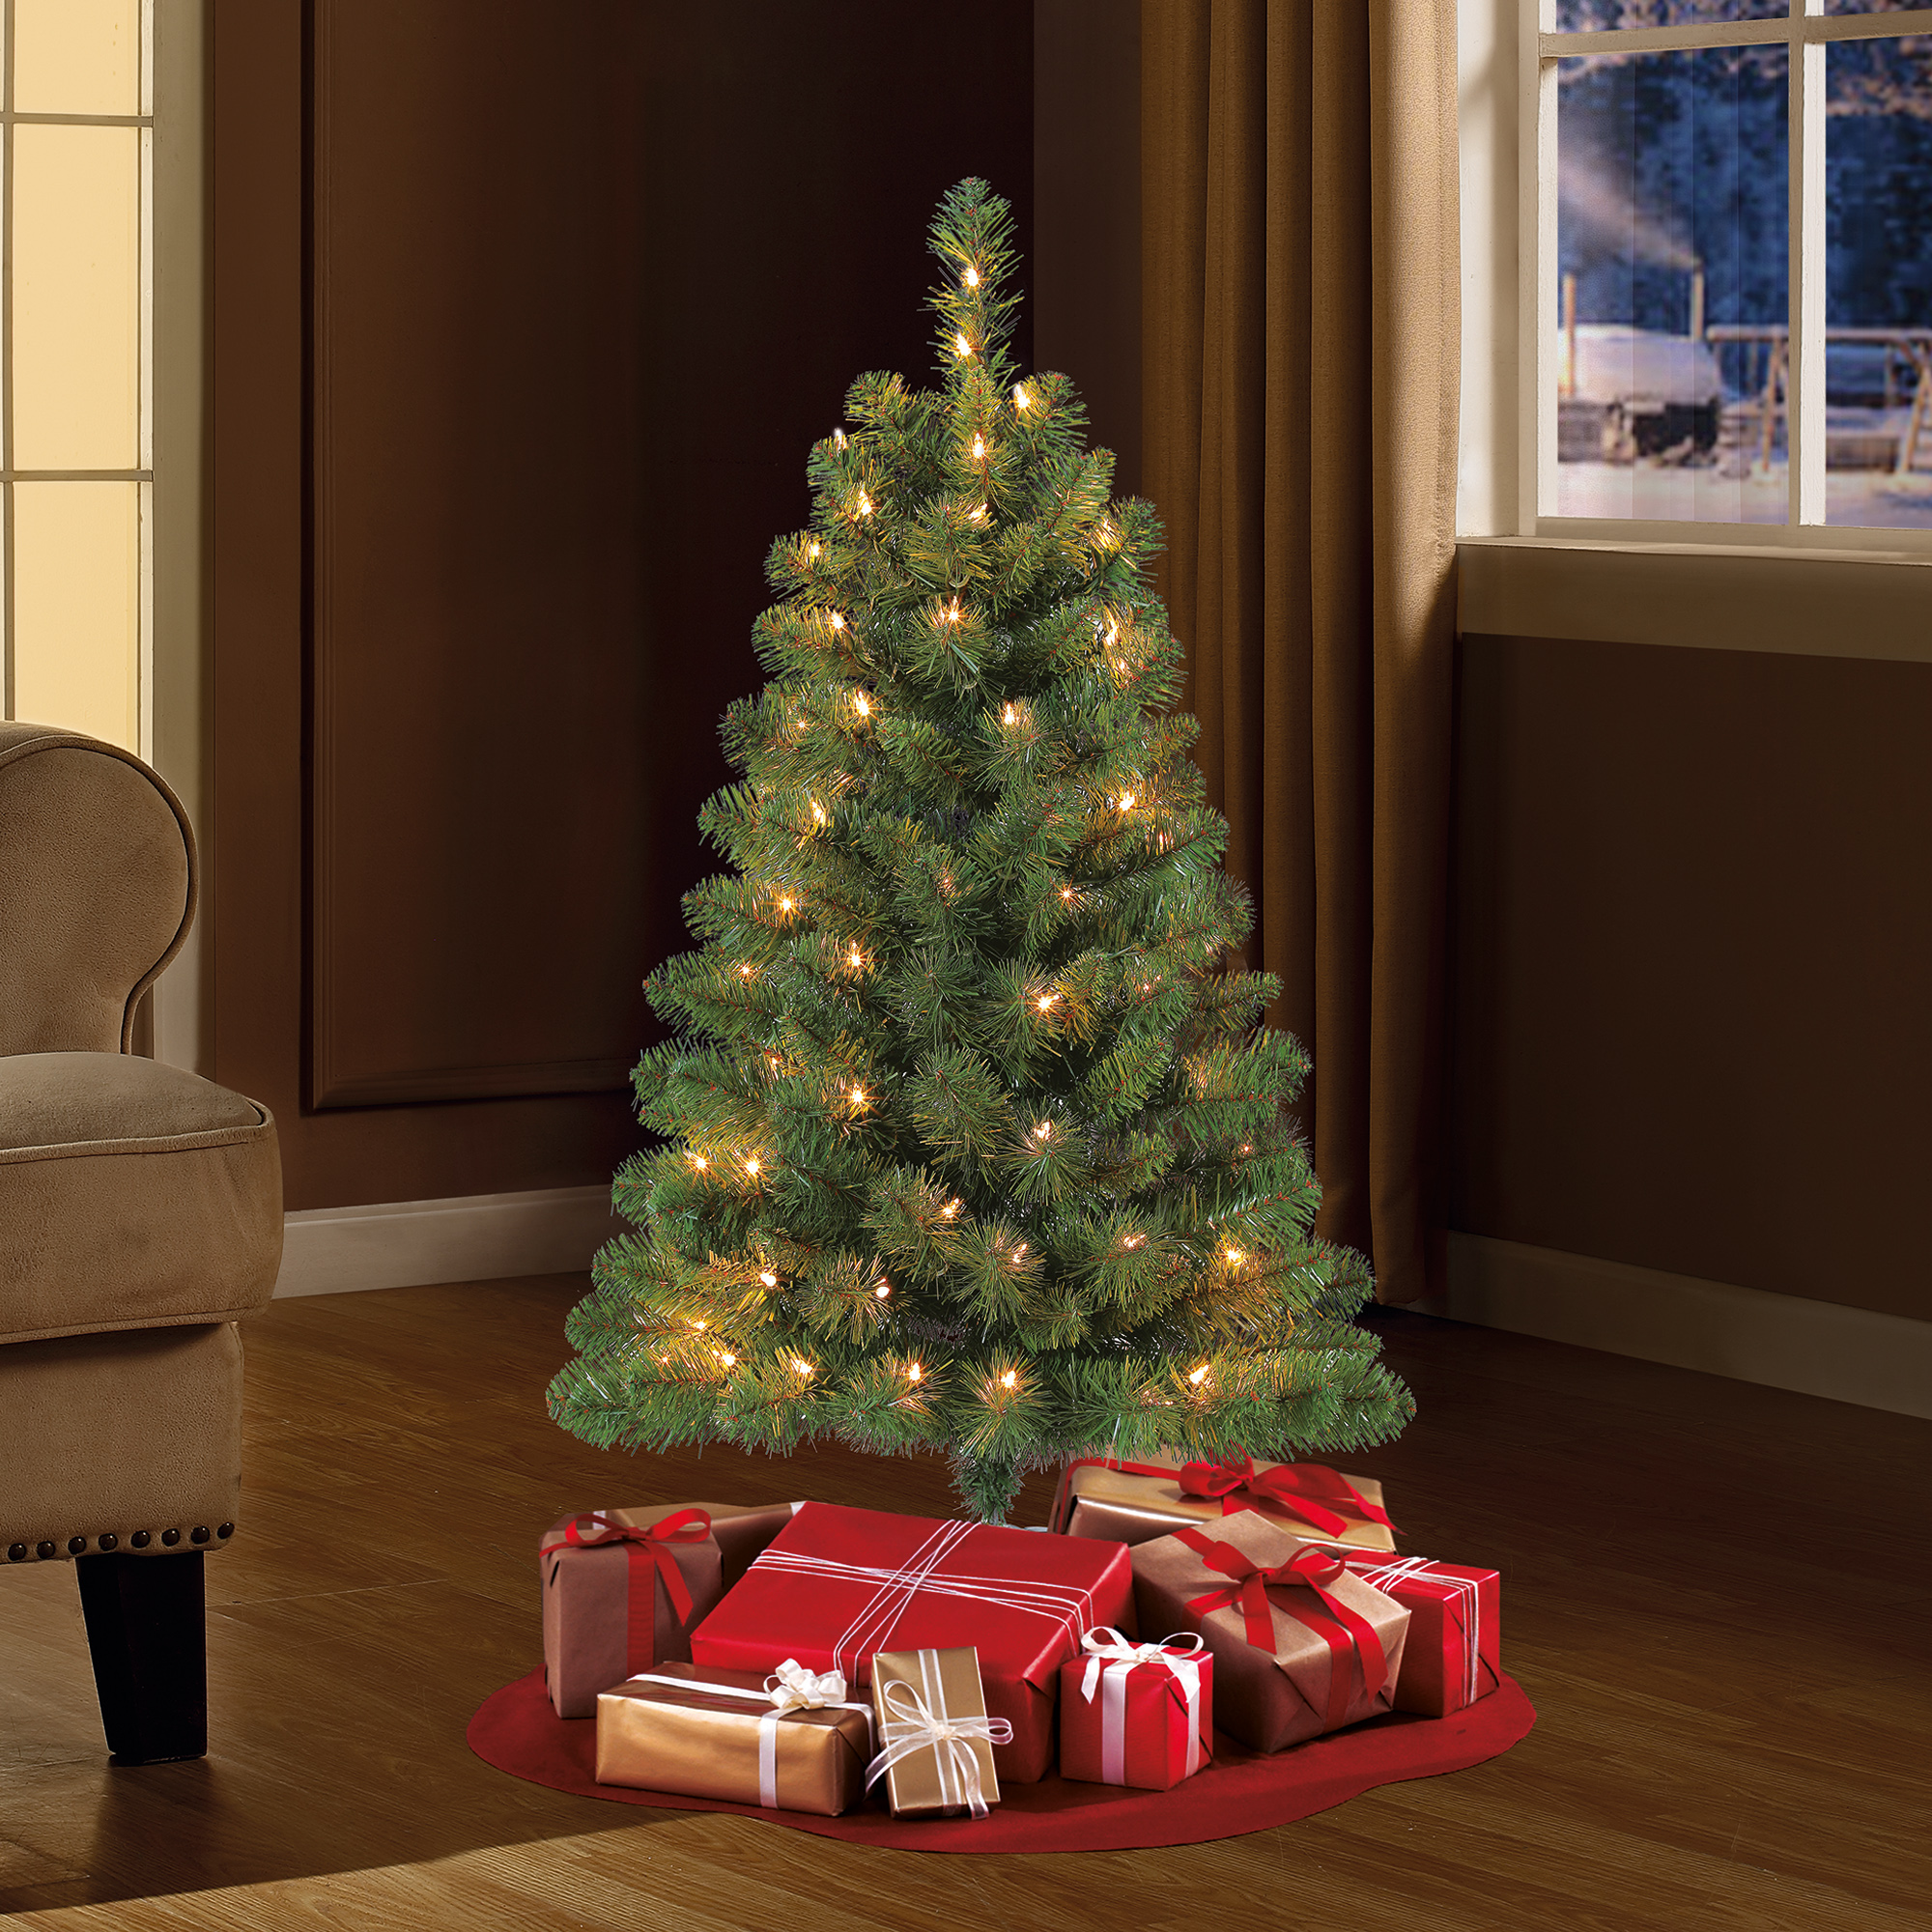 Walmart Christmas Trees on Sale | Best Deals & Cheap Pre ...